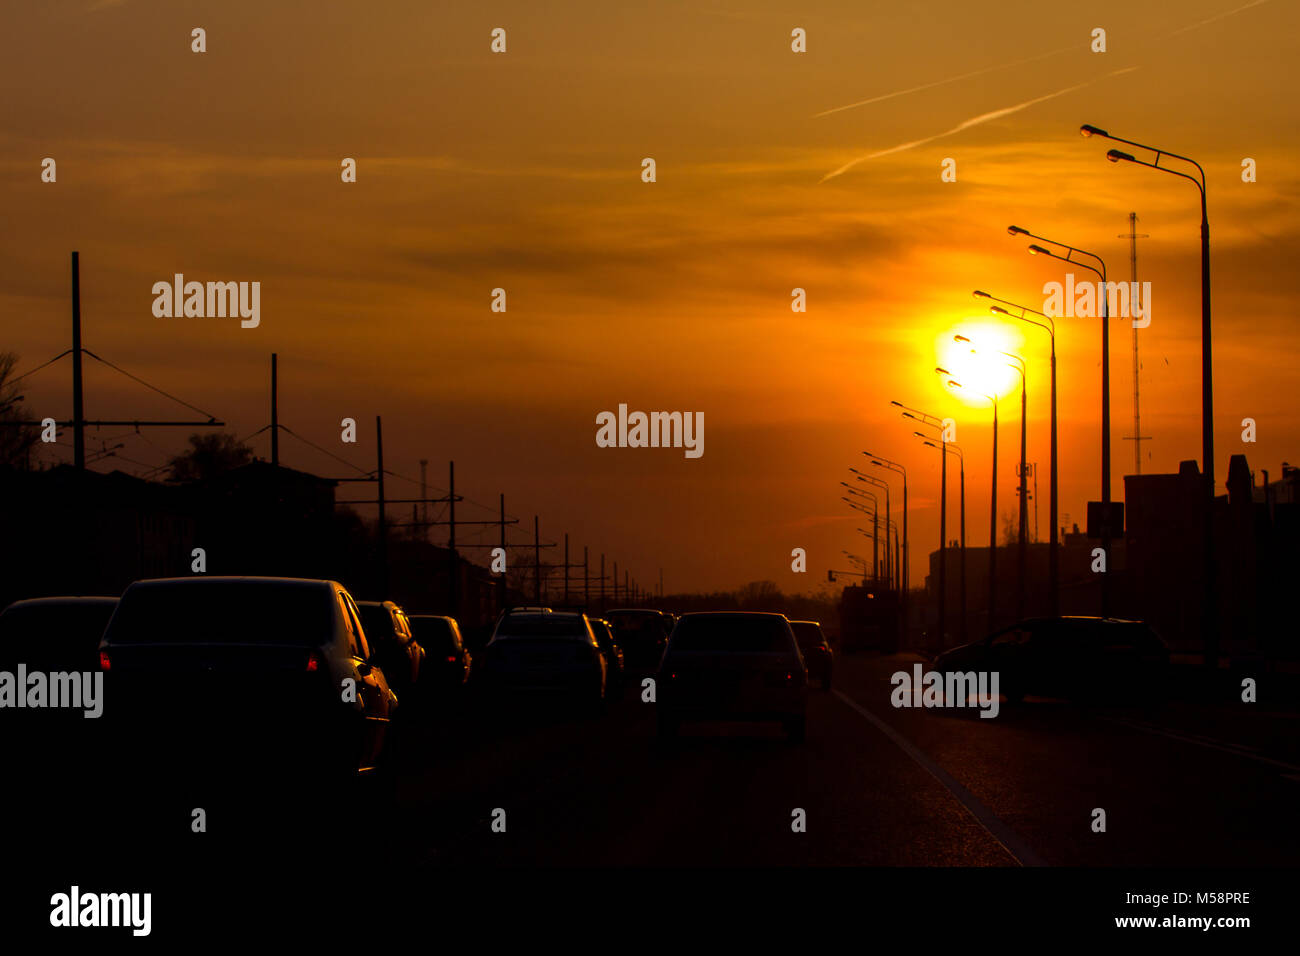 Car traffic against the sunset background - modern city - silhouette - Stock Image